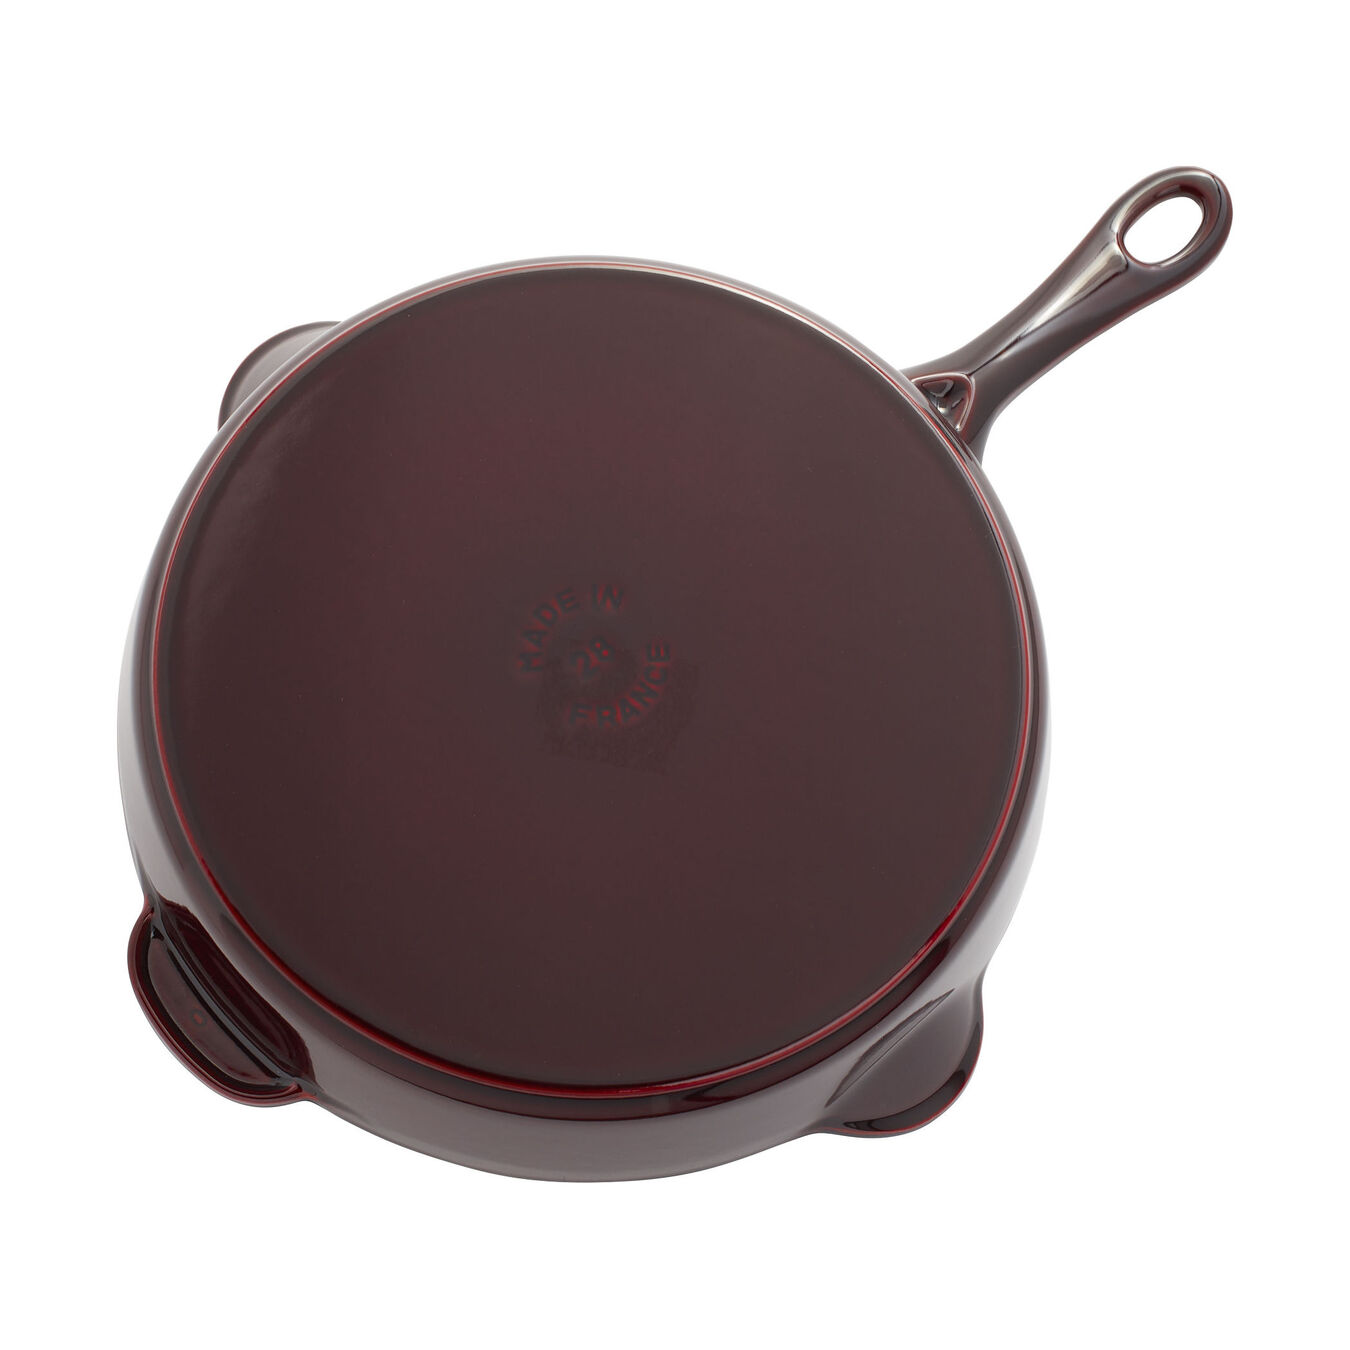 28 cm / 11 inch Frying pan, grenadine-red - Visual Imperfections,,large 4